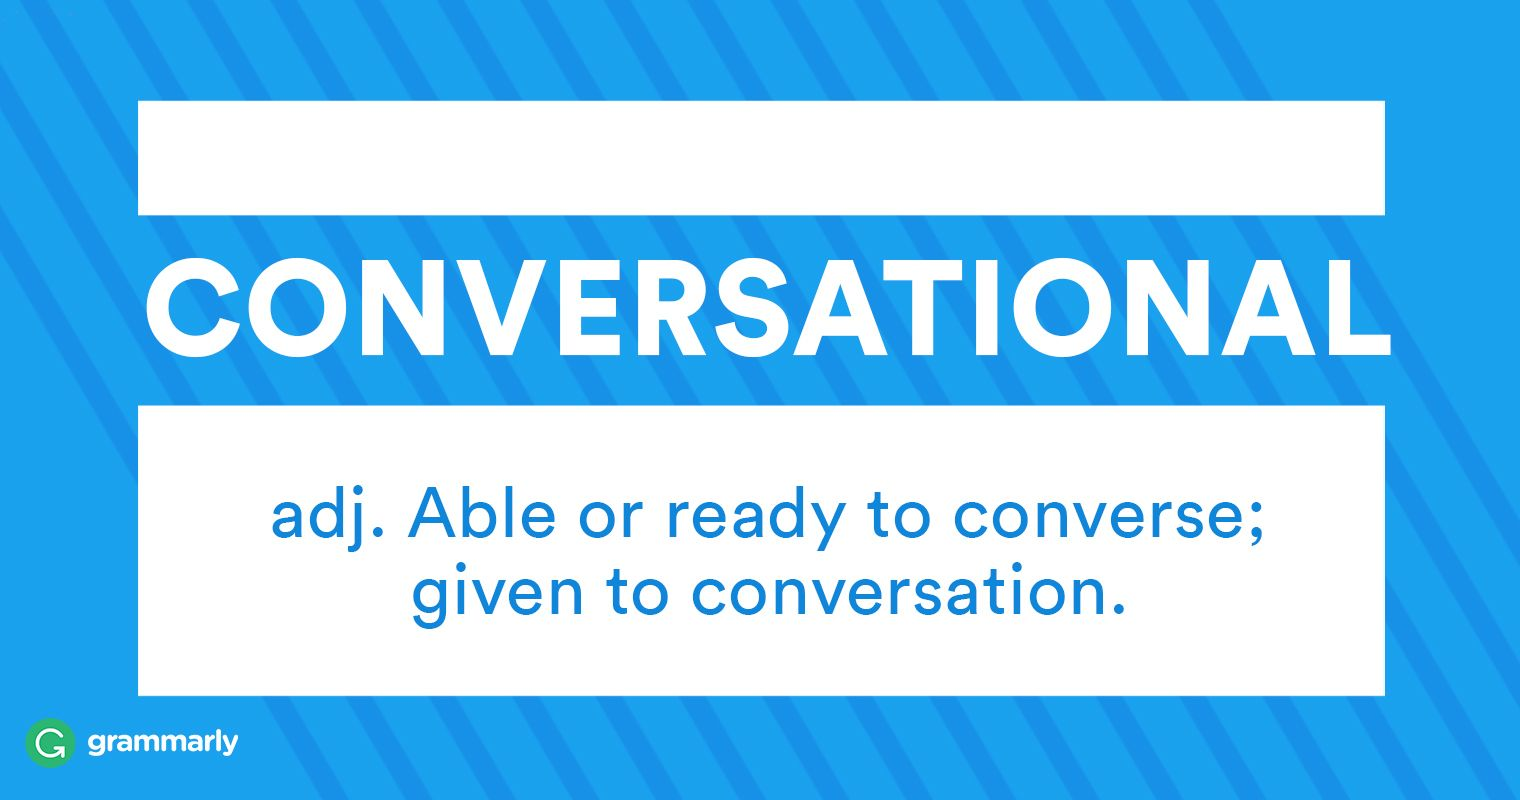 14 Conversational Skills You Can Easily Learn and Apply at Work